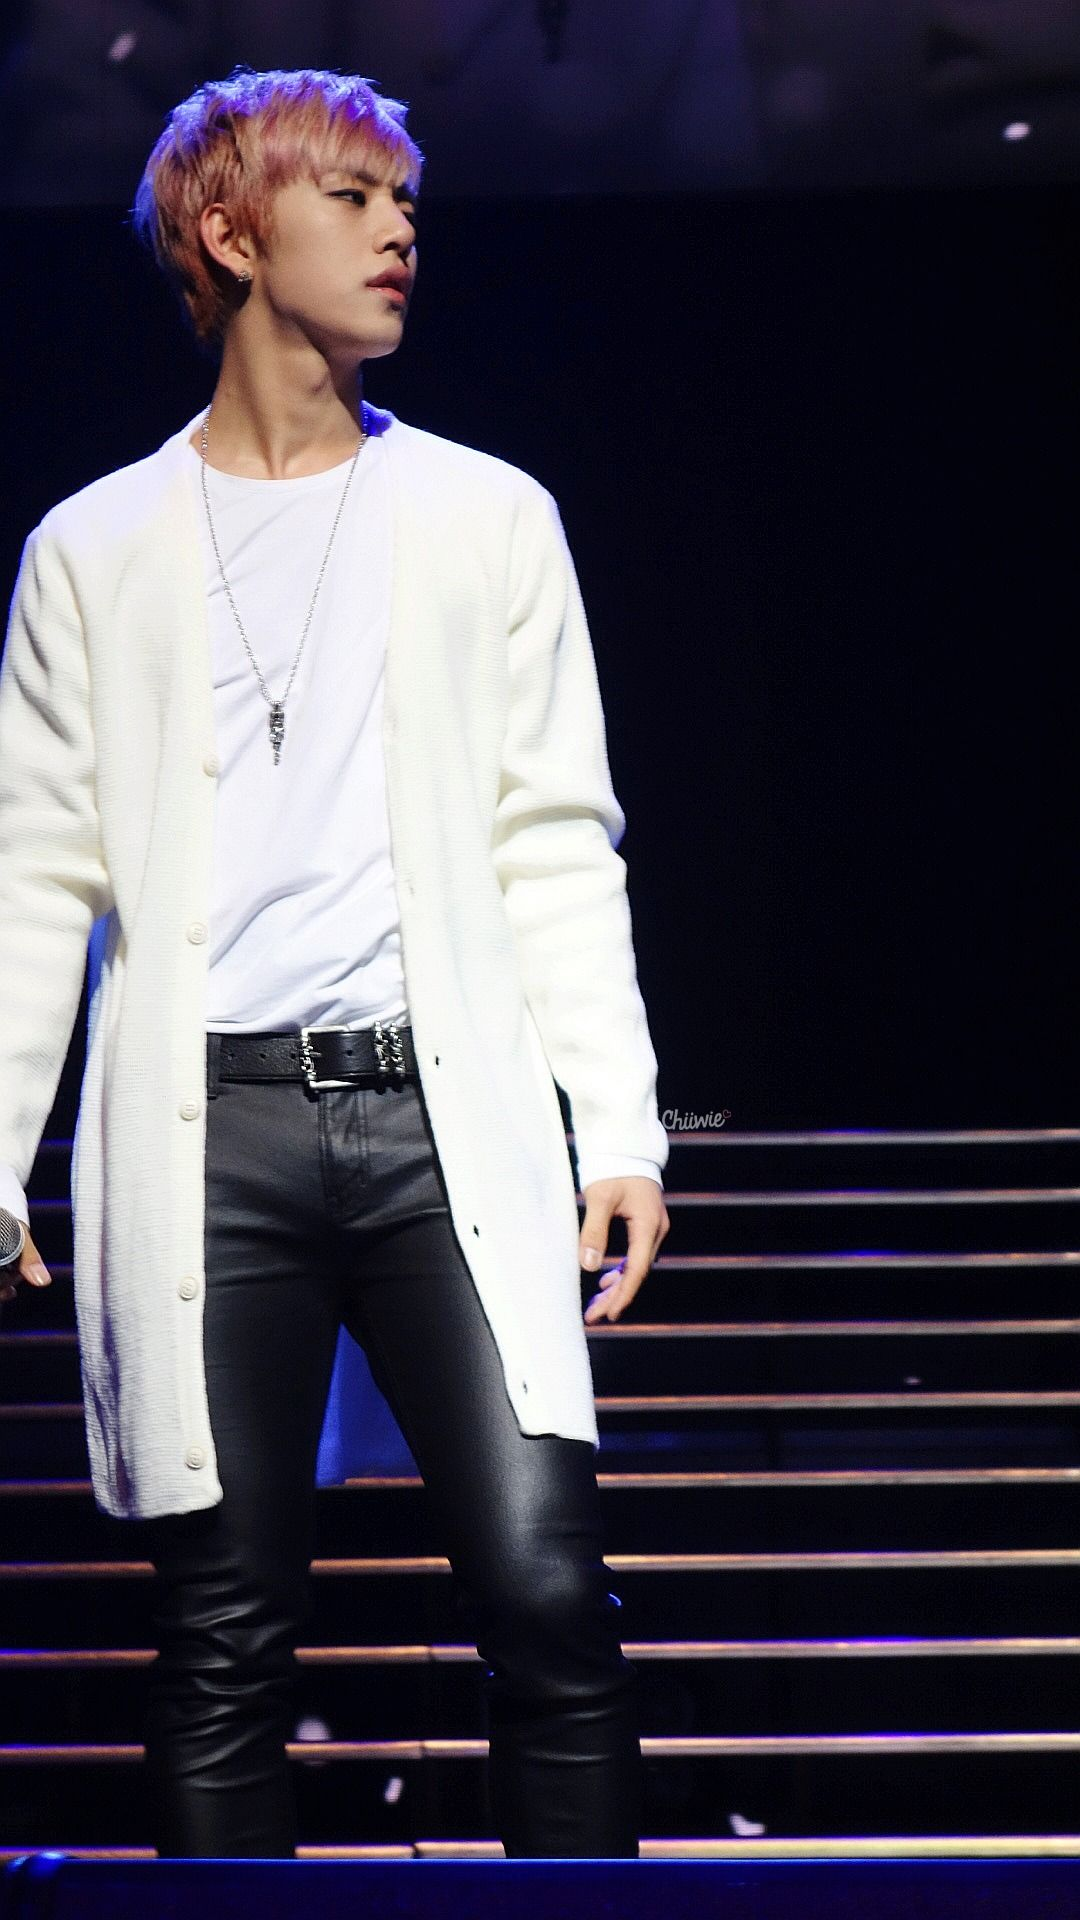 Daehyun LOE 2014 Dallas that I was able to go seexD